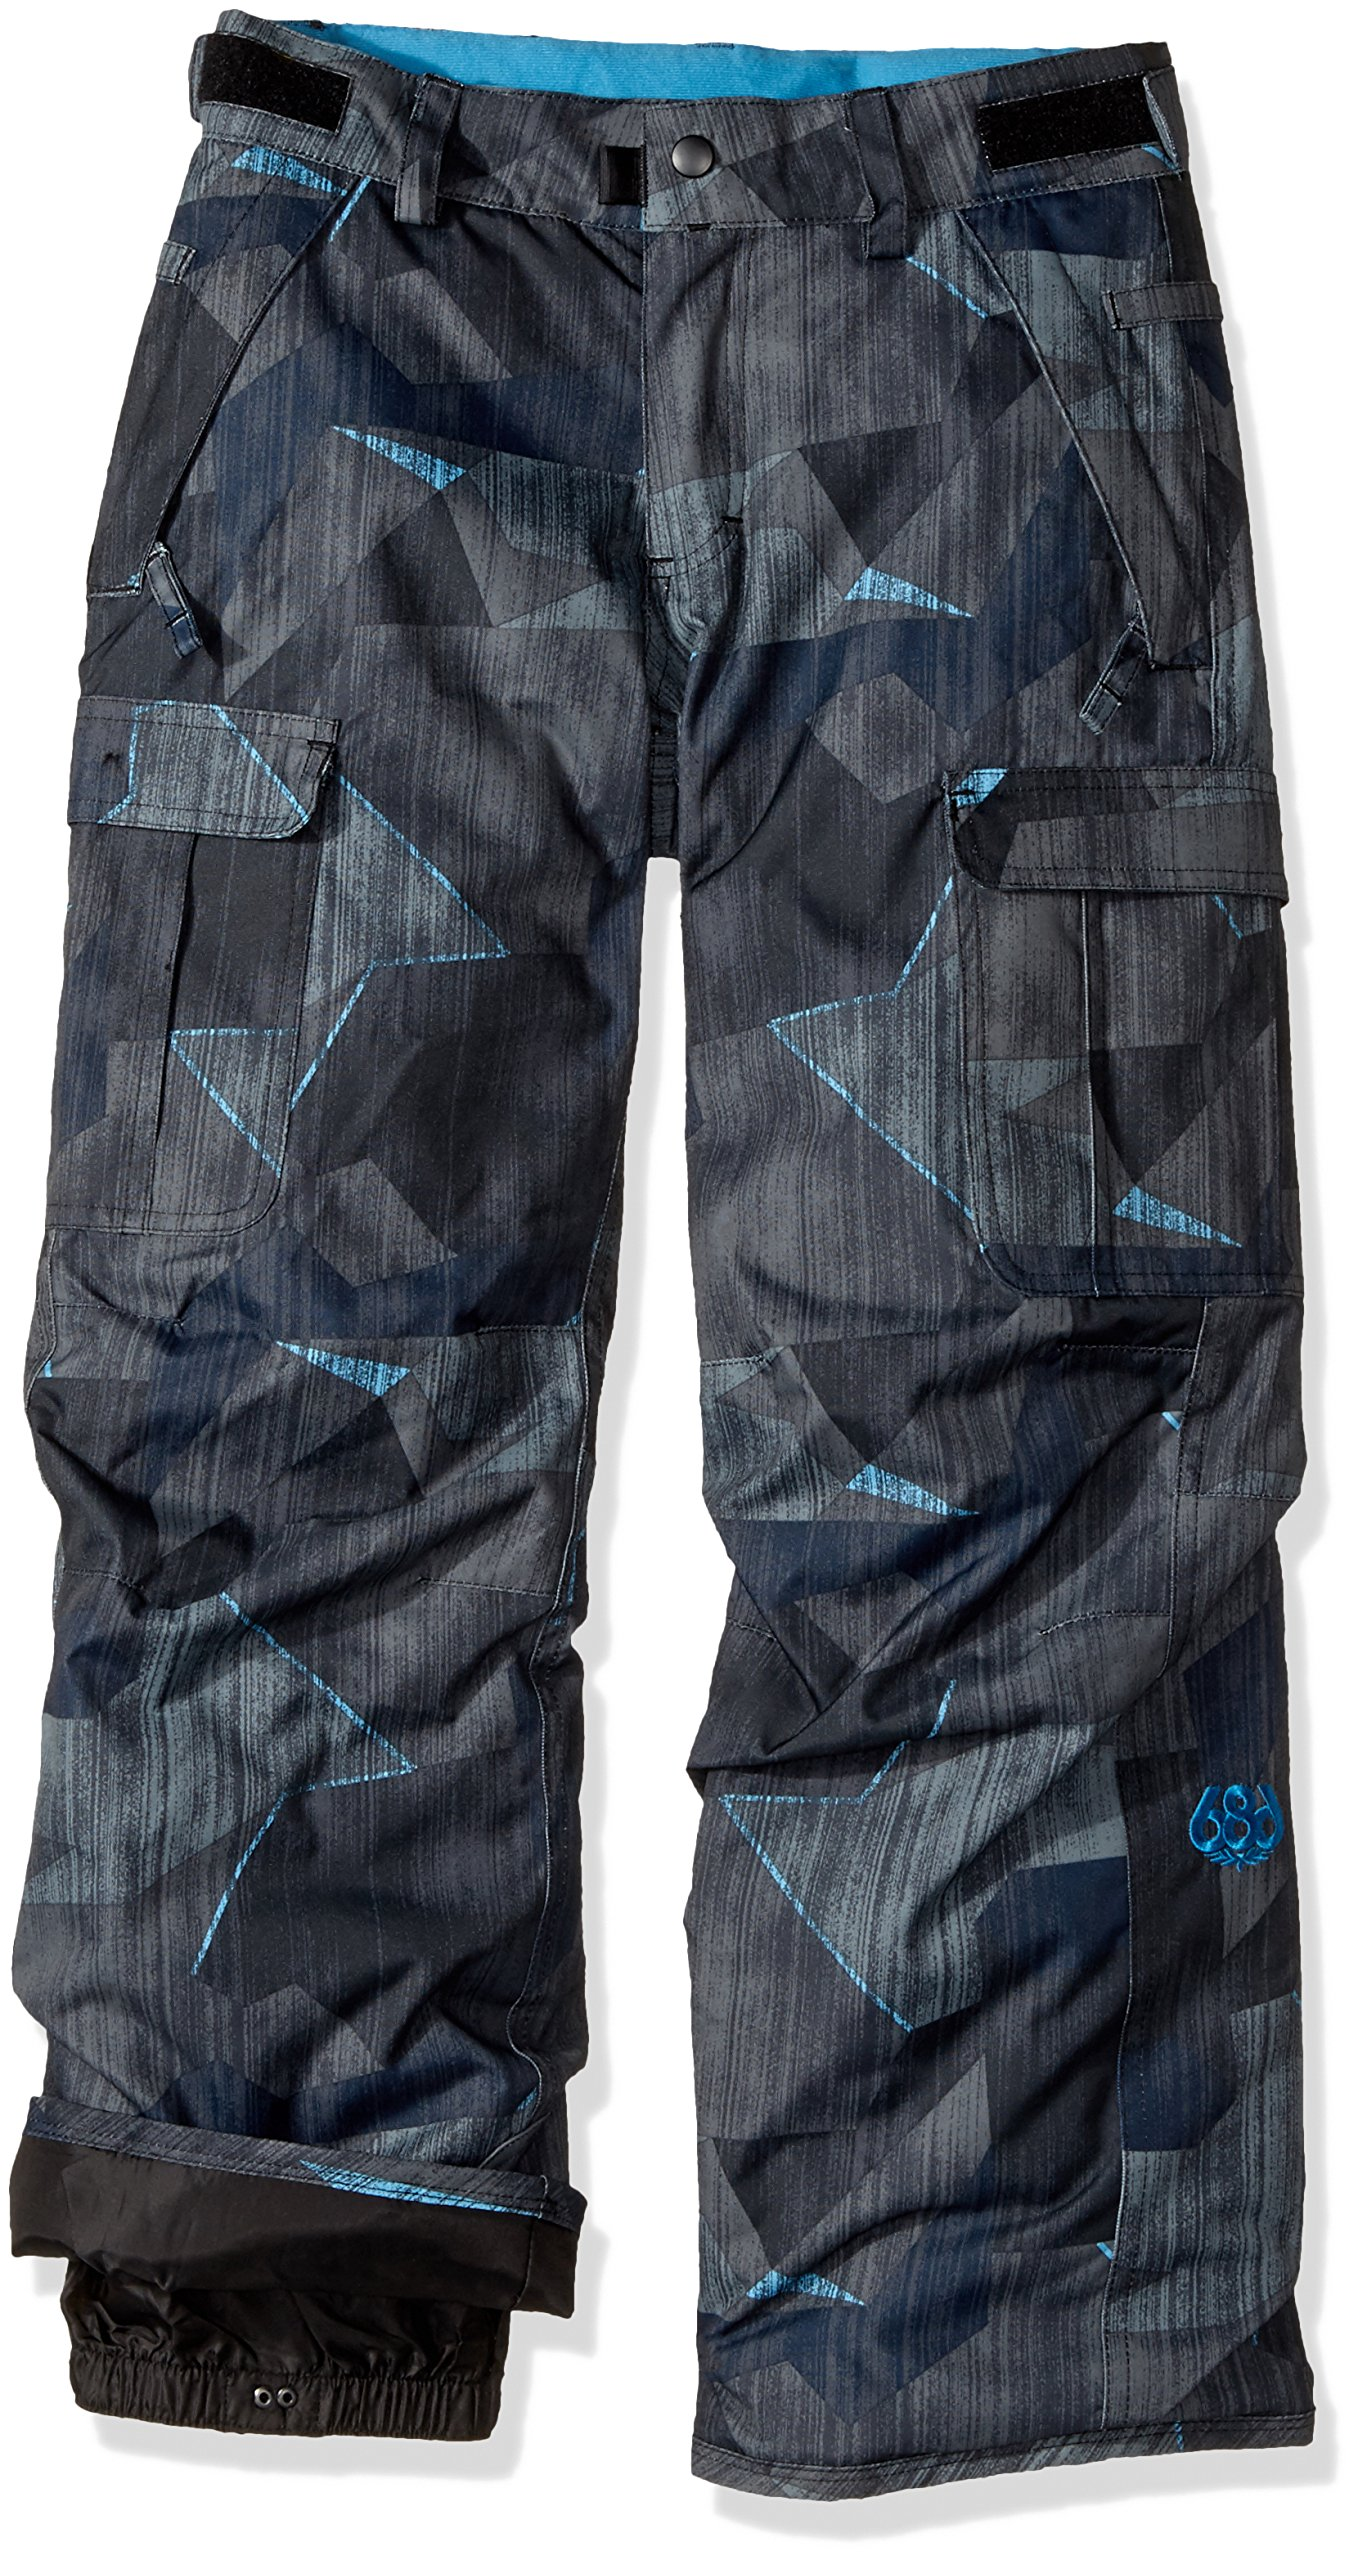 686 Boy's All Terrain Insl pnt, Charcoal Metric Camo Print, Medium